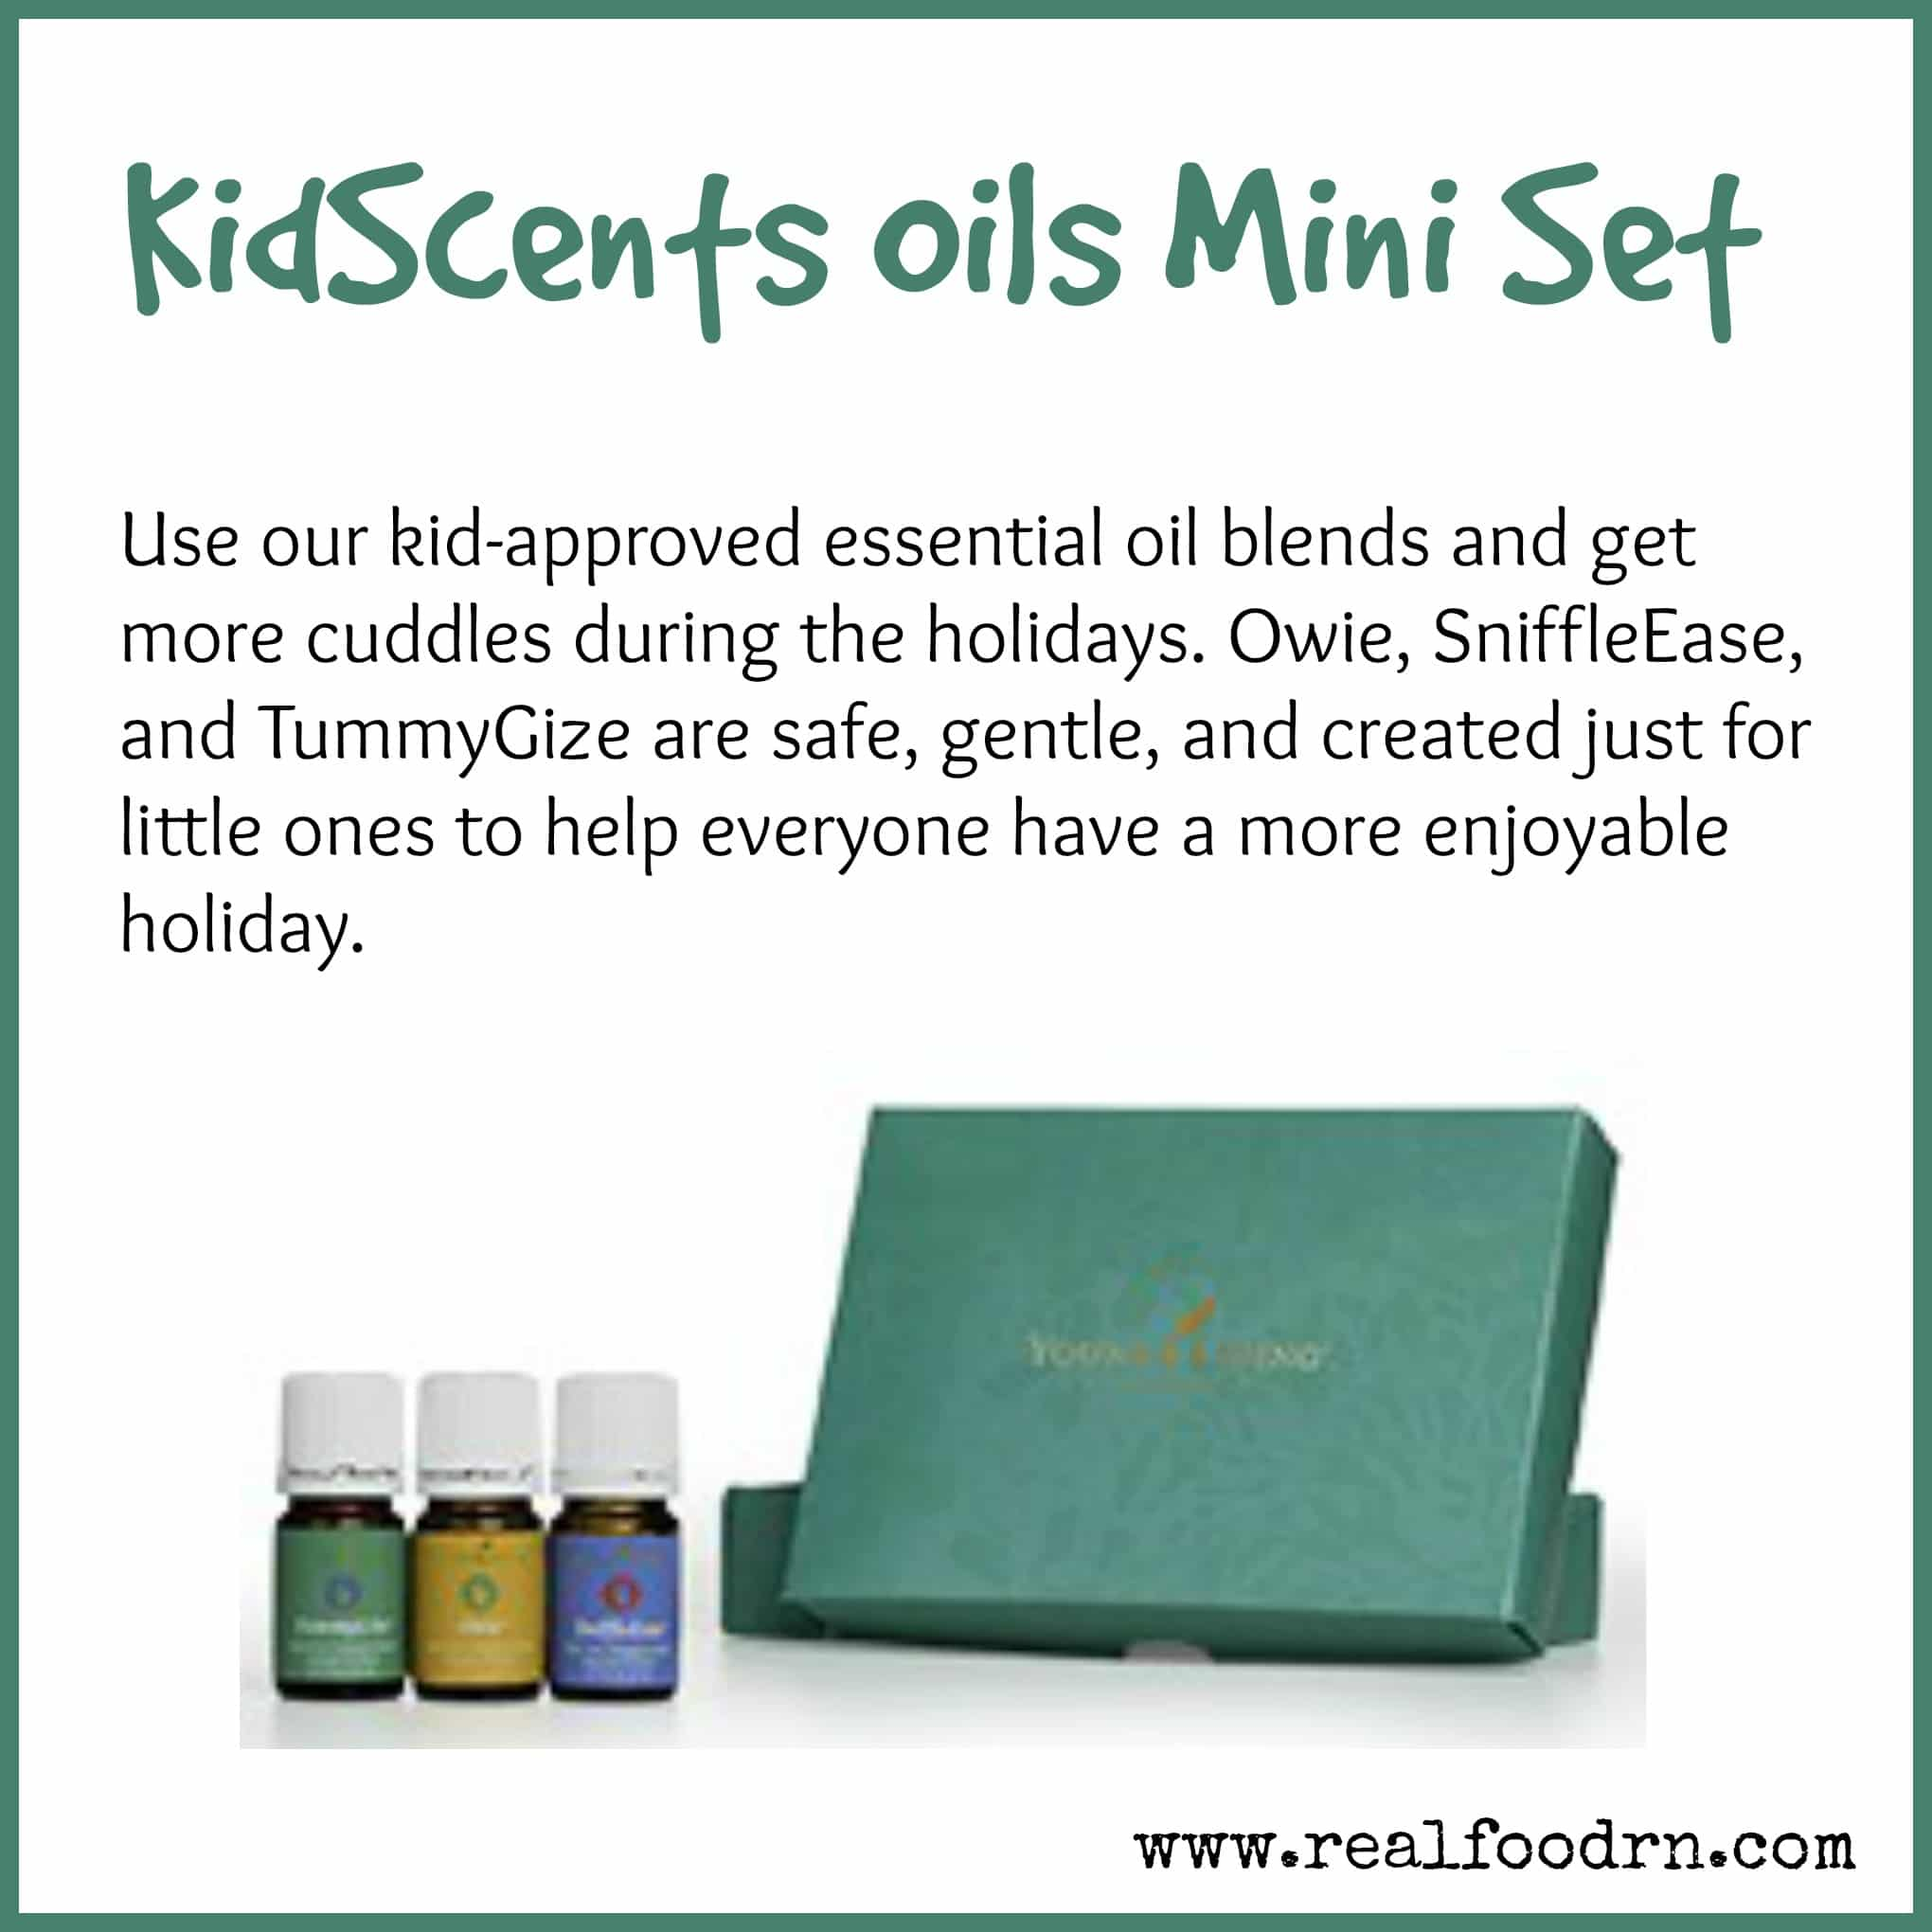 KidScents Oils Mini Set